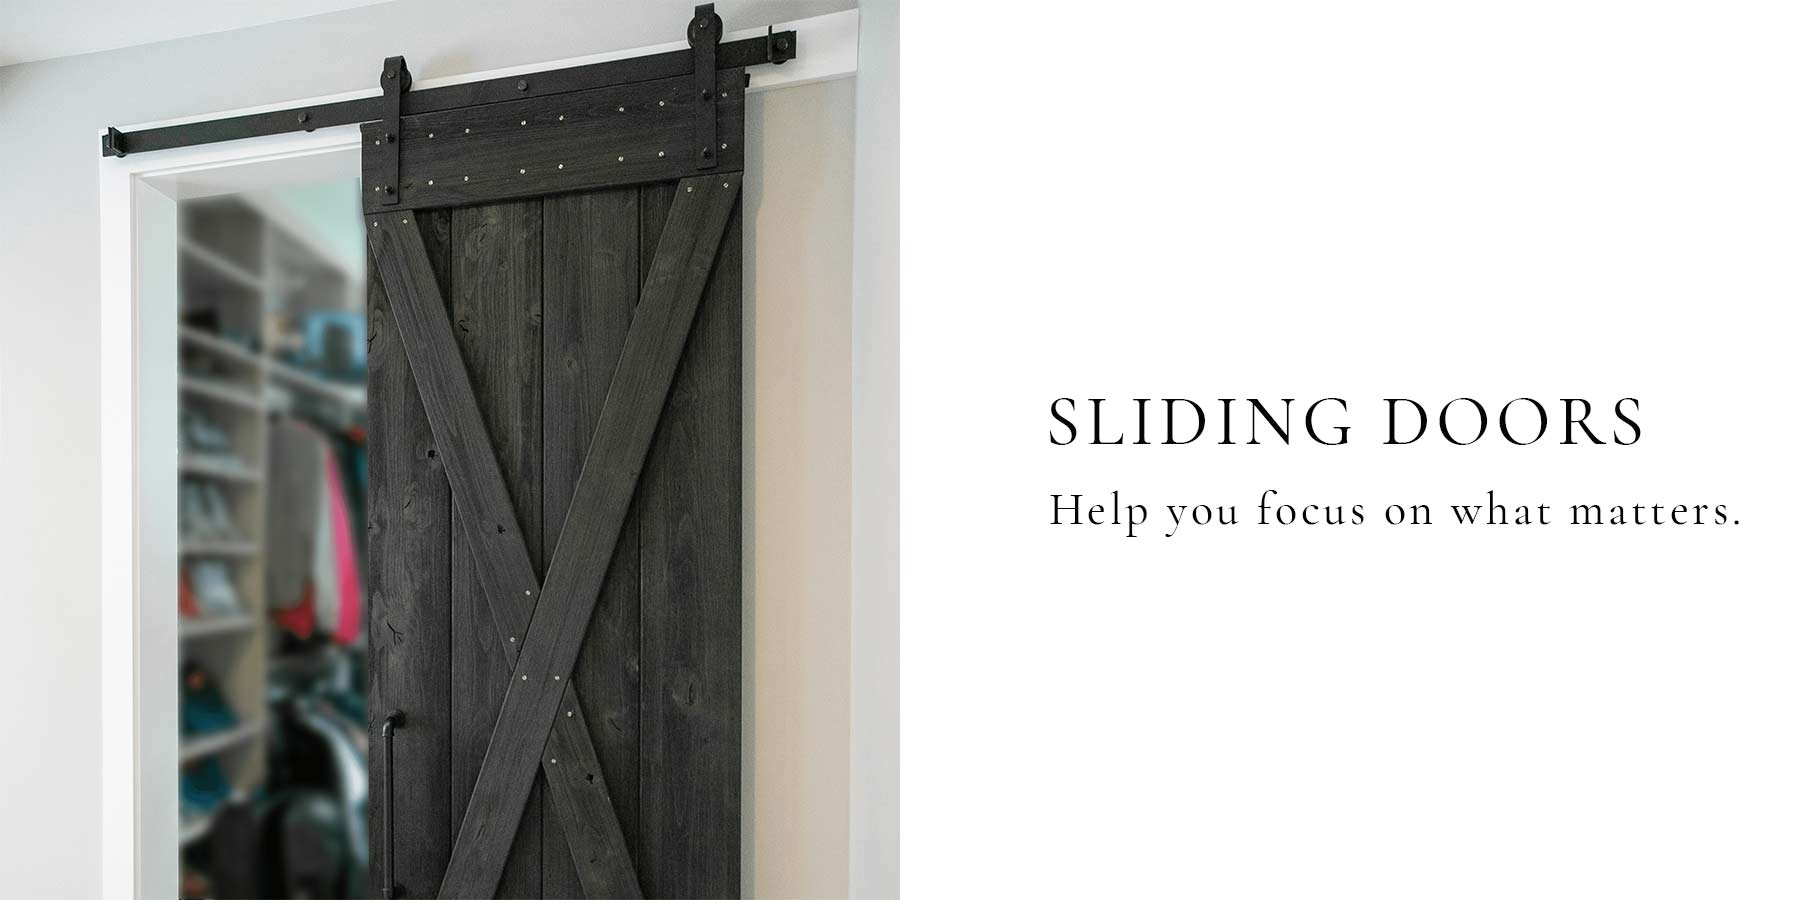 Weathered wood gray traditional barn door design installed in a closet space.